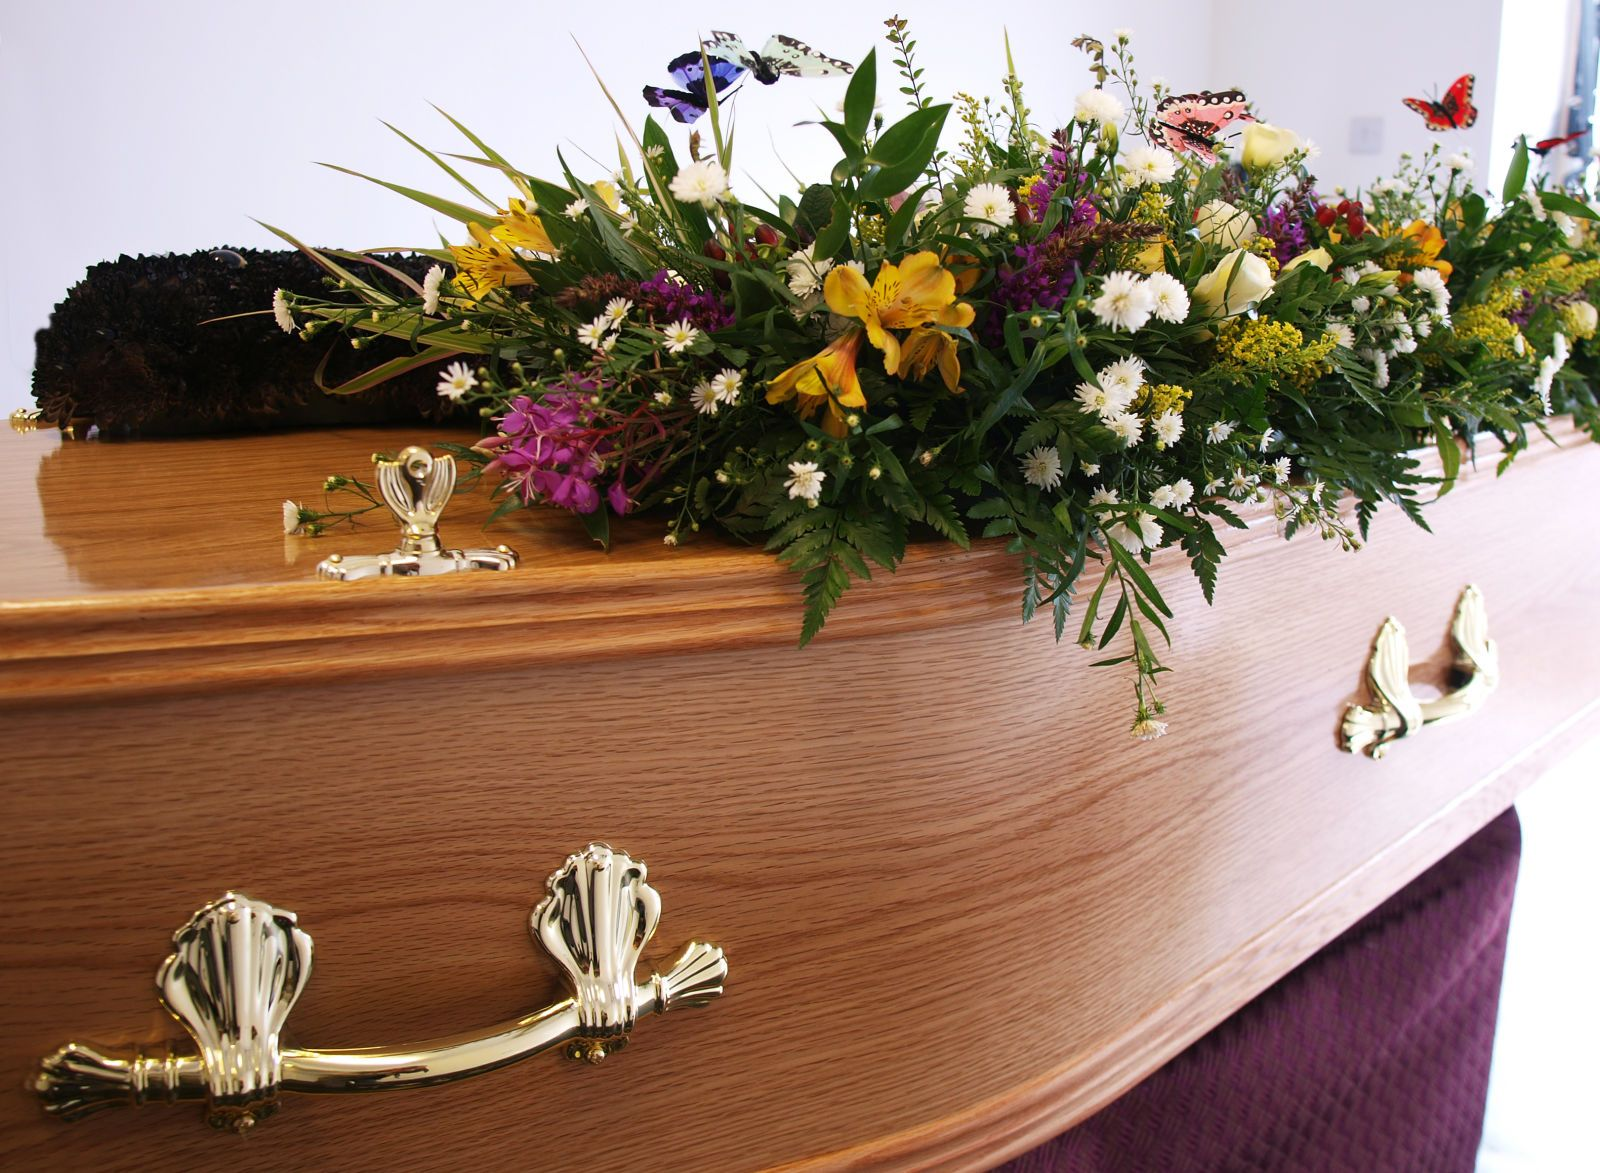 10 unspoken funeral etiquette rules every guest should follow 10 unspoken funeral etiquette rules every guest should follow izmirmasajfo